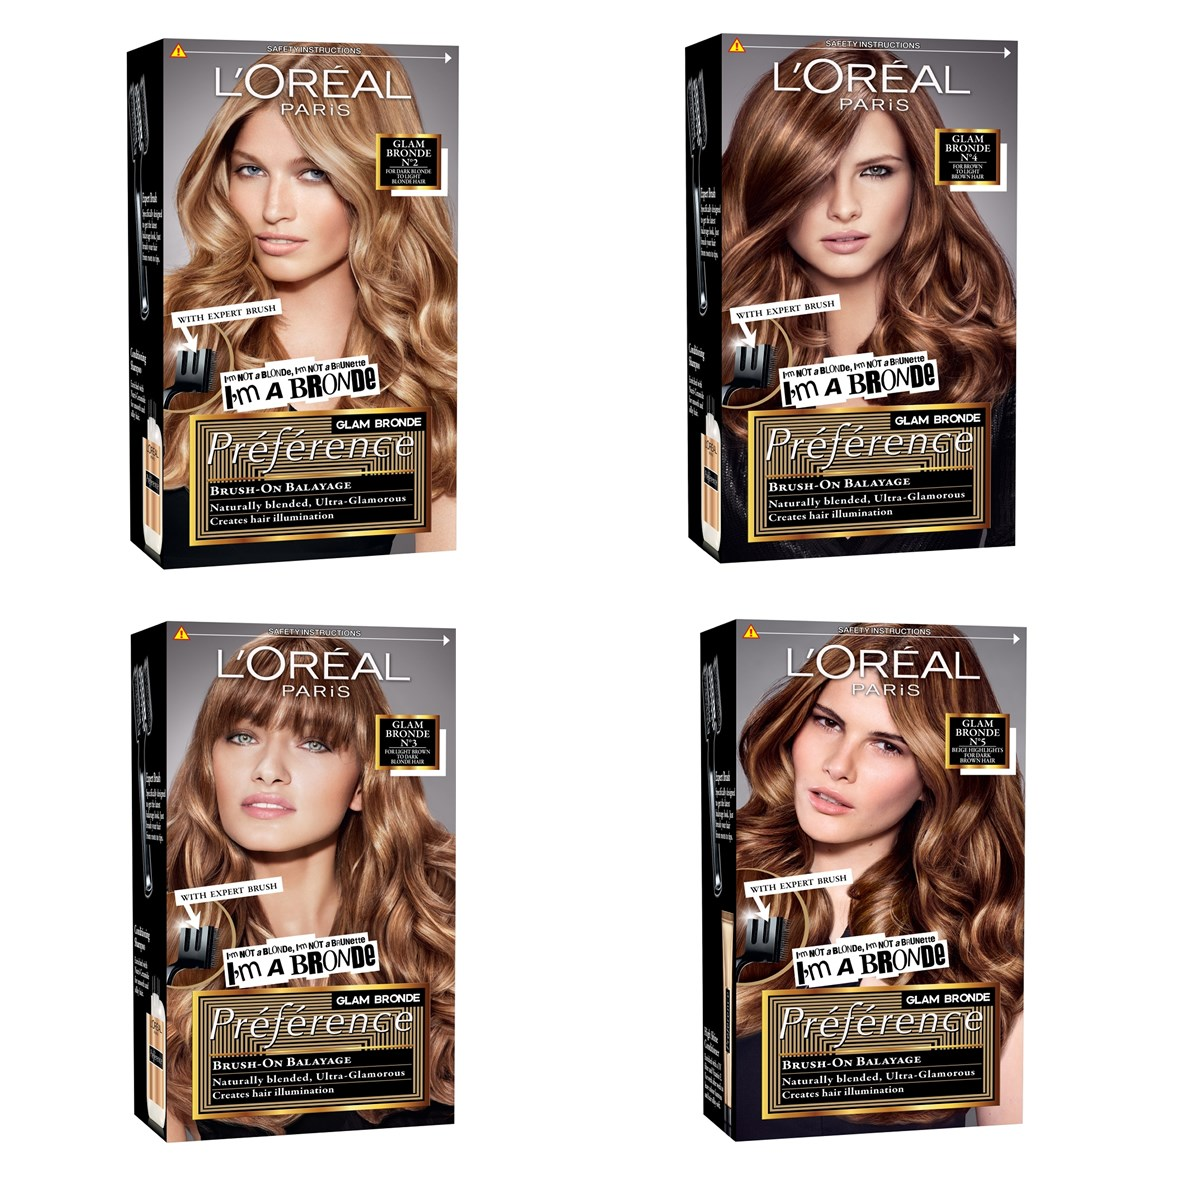 L'Oreal Paris Preference Blondes - I'M A BRONDE